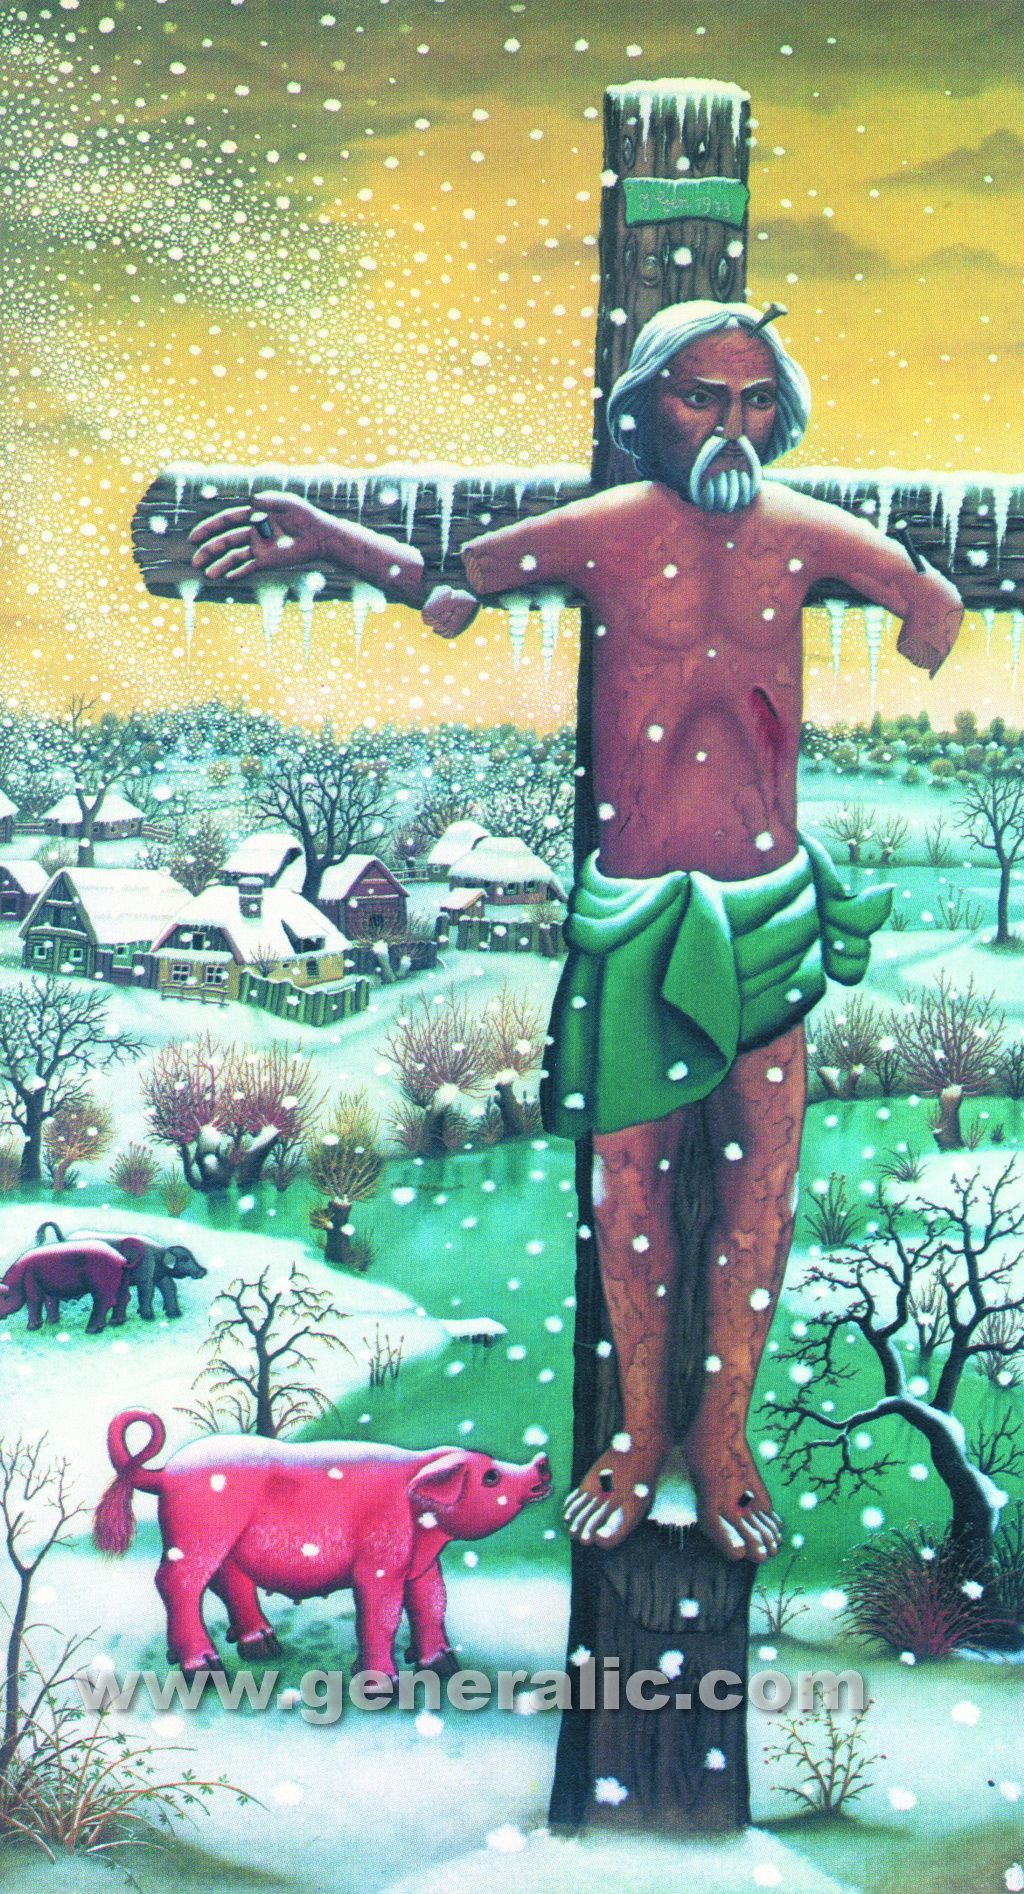 Ivan Generalic, 1973, The first snow - triptych 2, oil on glass